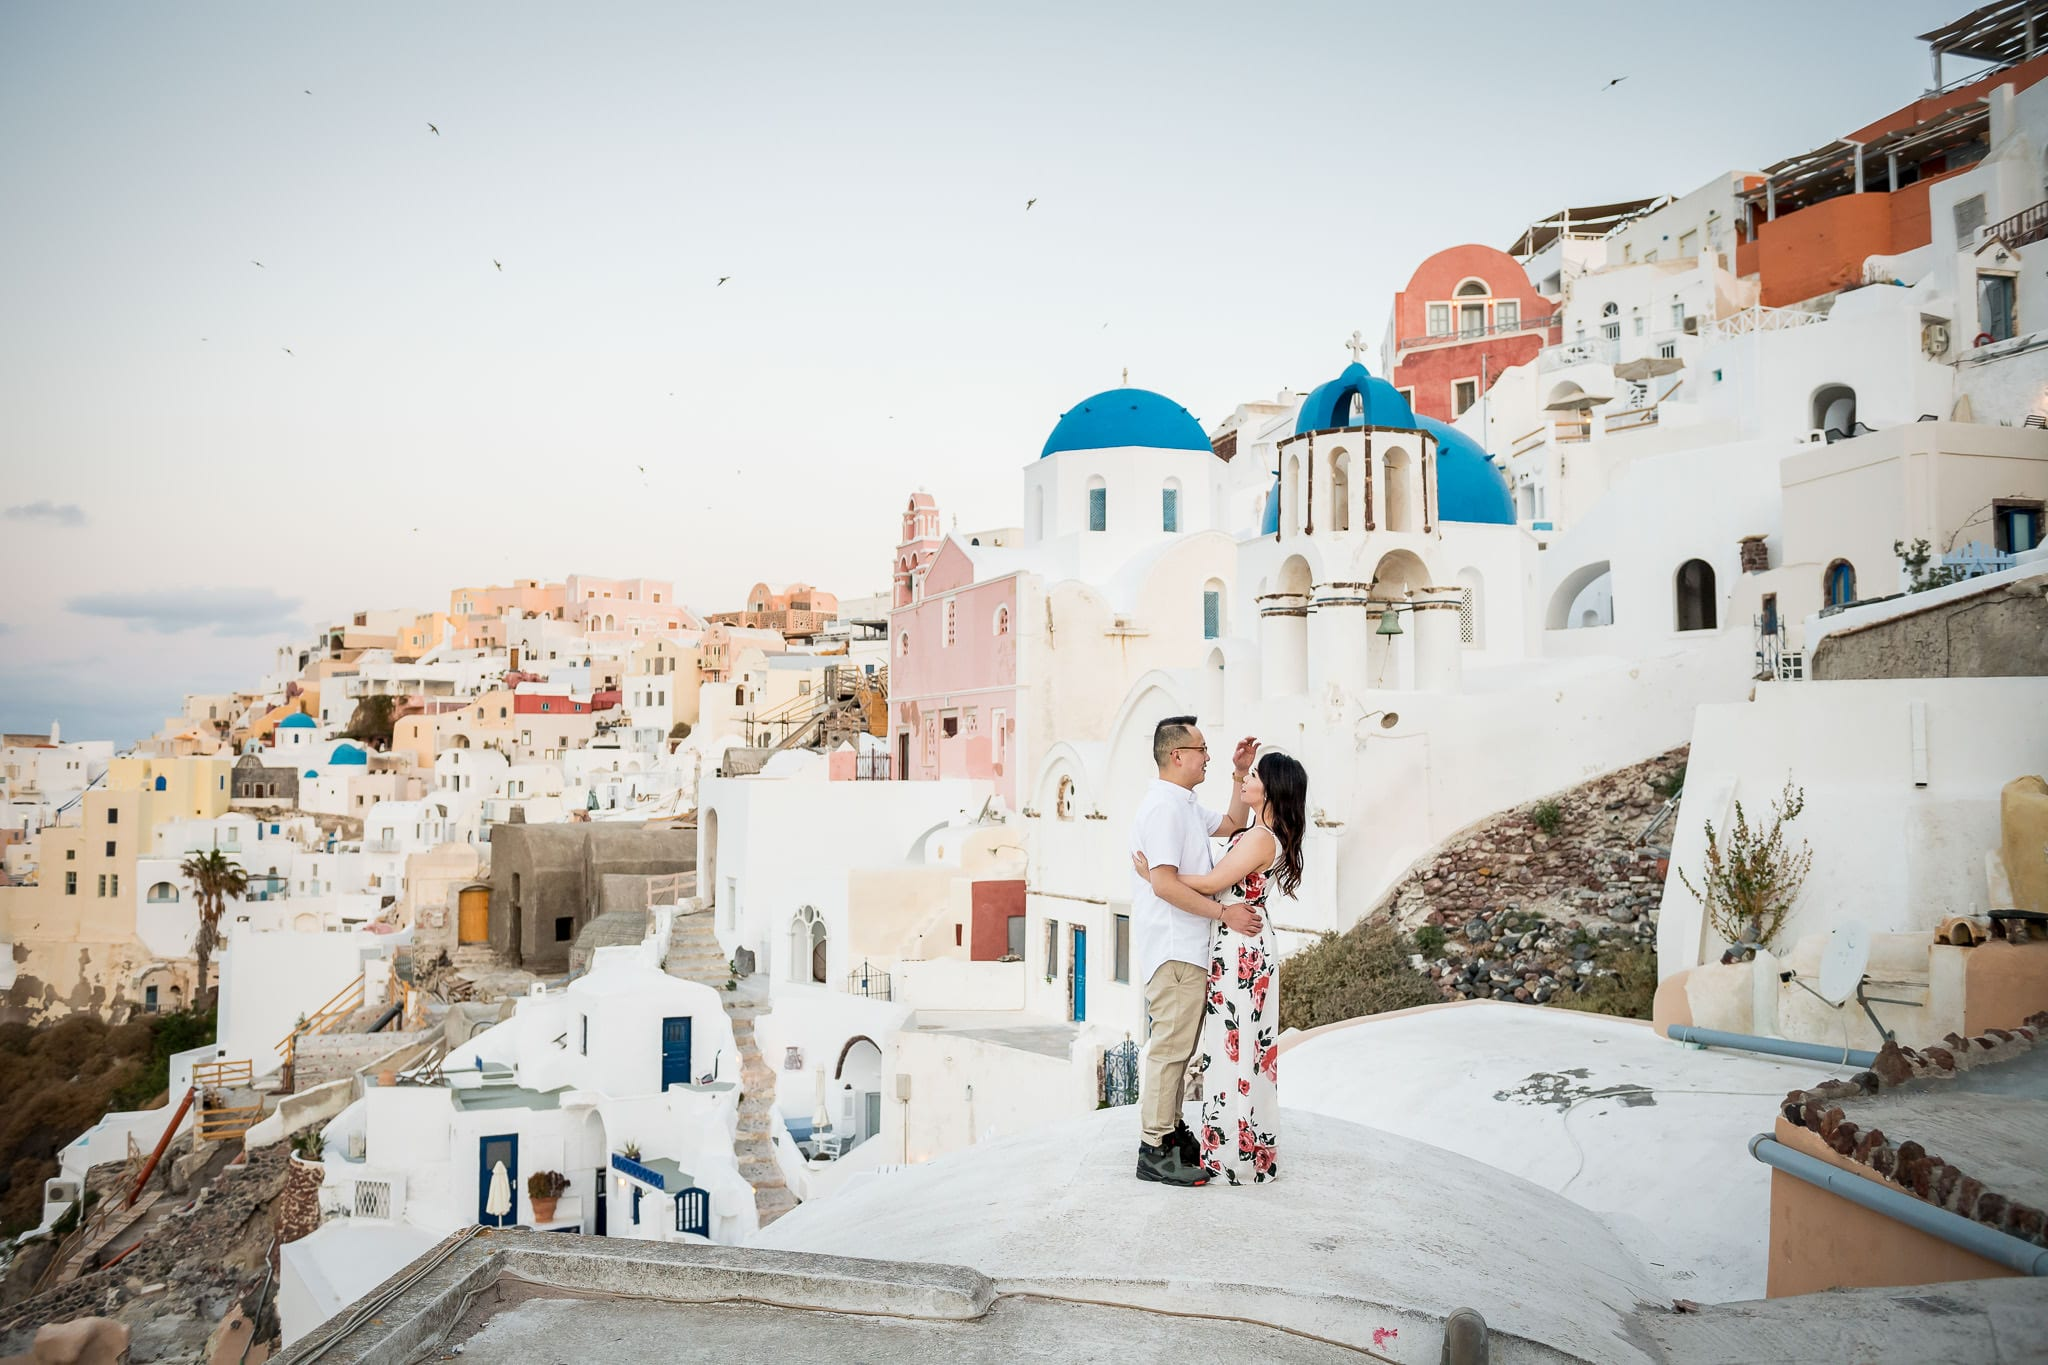 Santorini Honeymoon photo session wide-angle image of a newlywed man tenderly fixing the hair of his new bride with the colorful village of Oia in the background